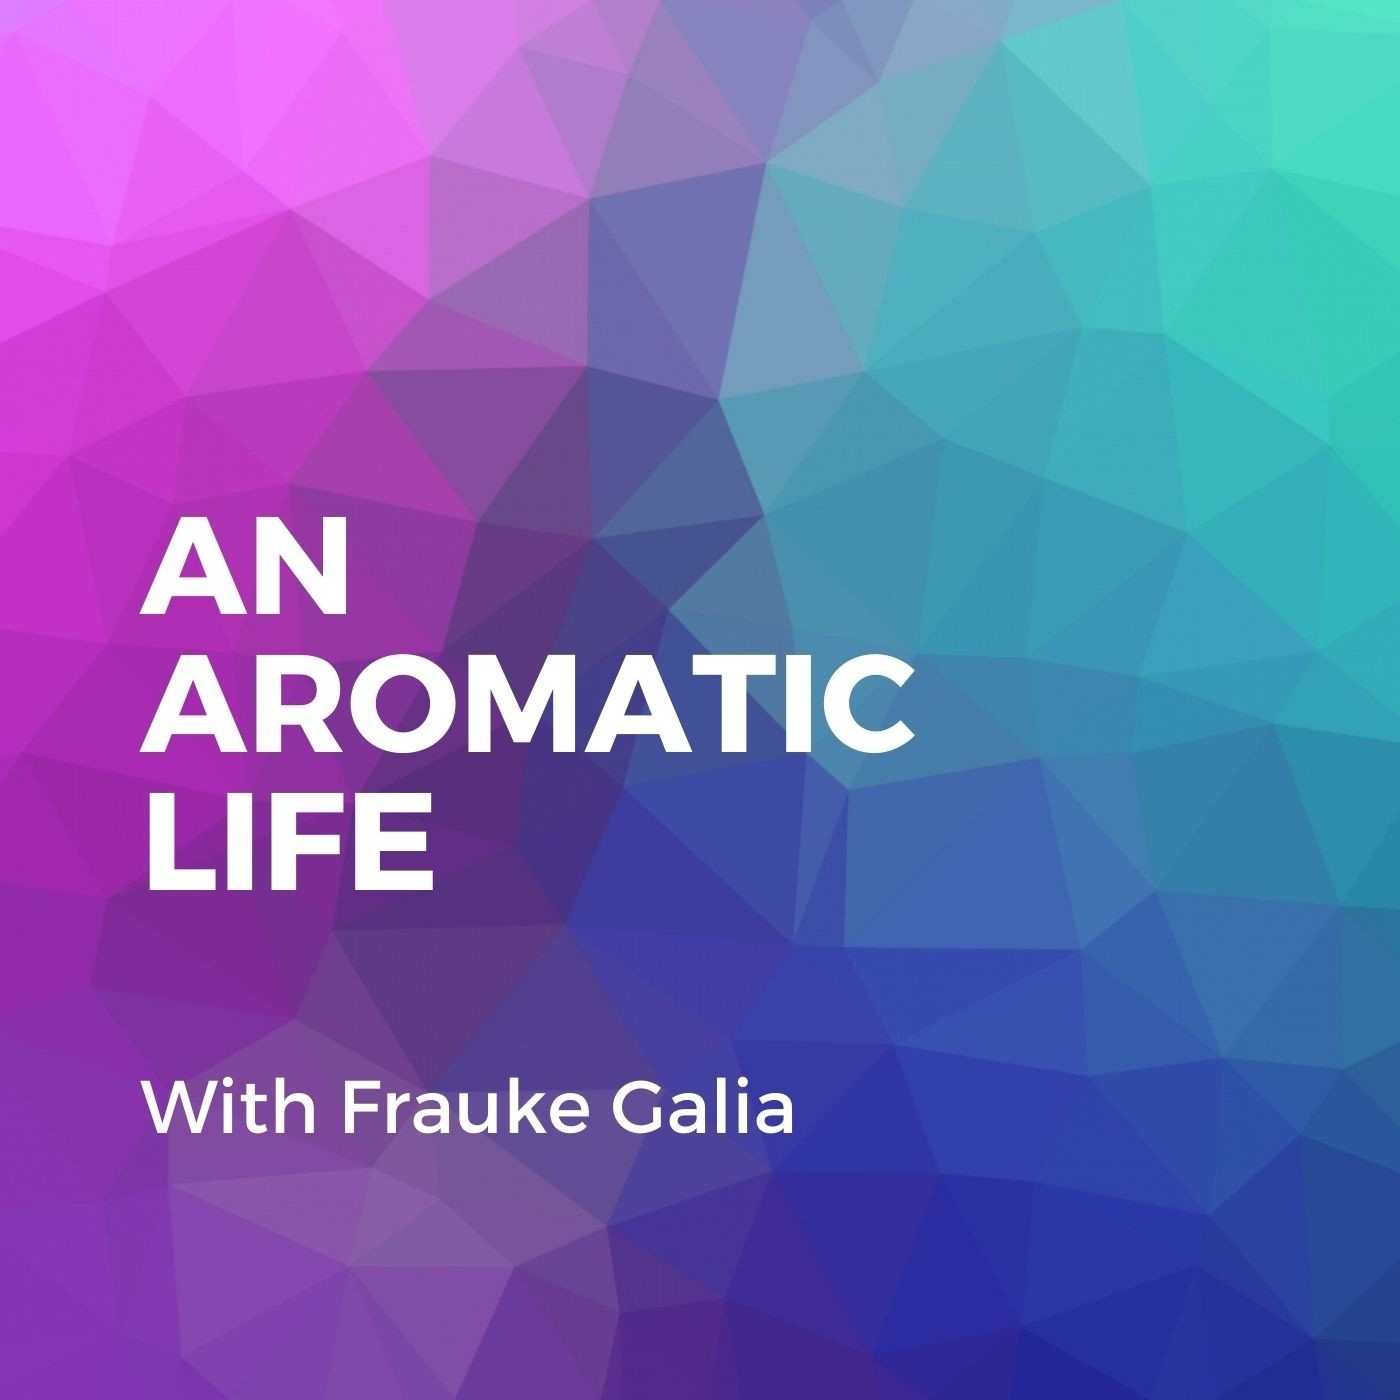 Yeqltglcrt2tpsrco87t an aromatic life podcast cover